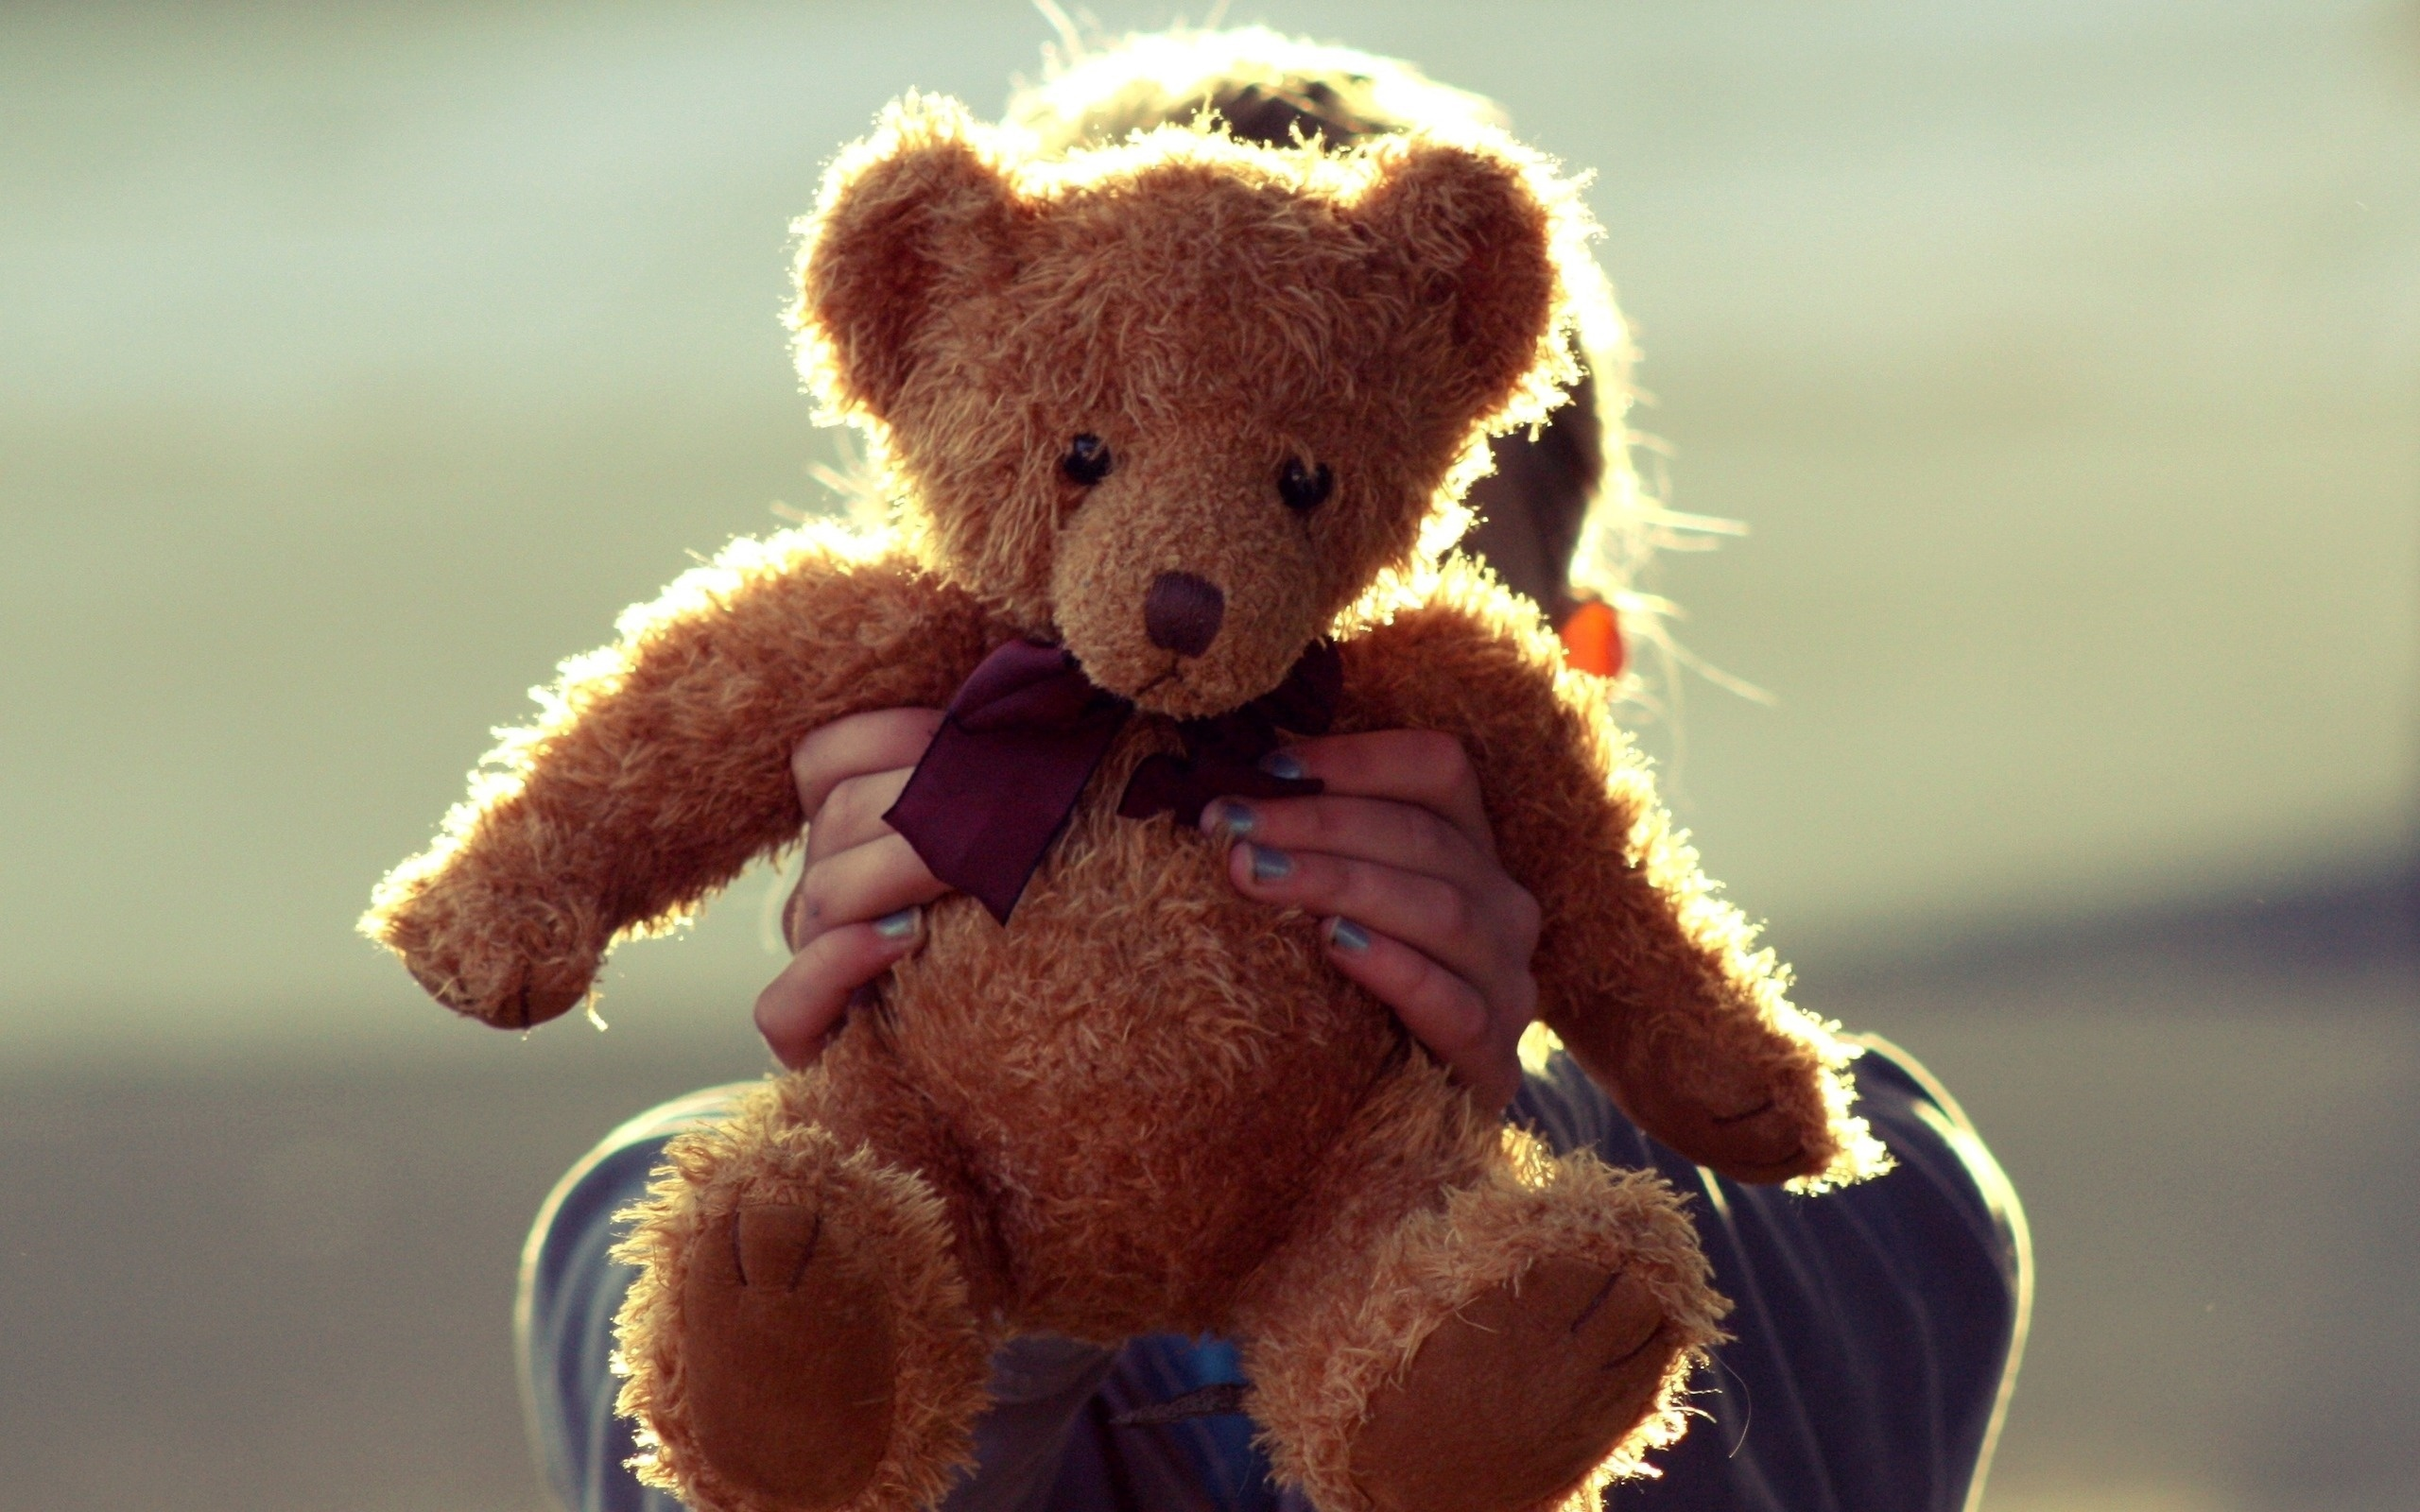 Teddy Bear Toy Hand   Stock Photos Images HD Wallpaper HD 2560x1600